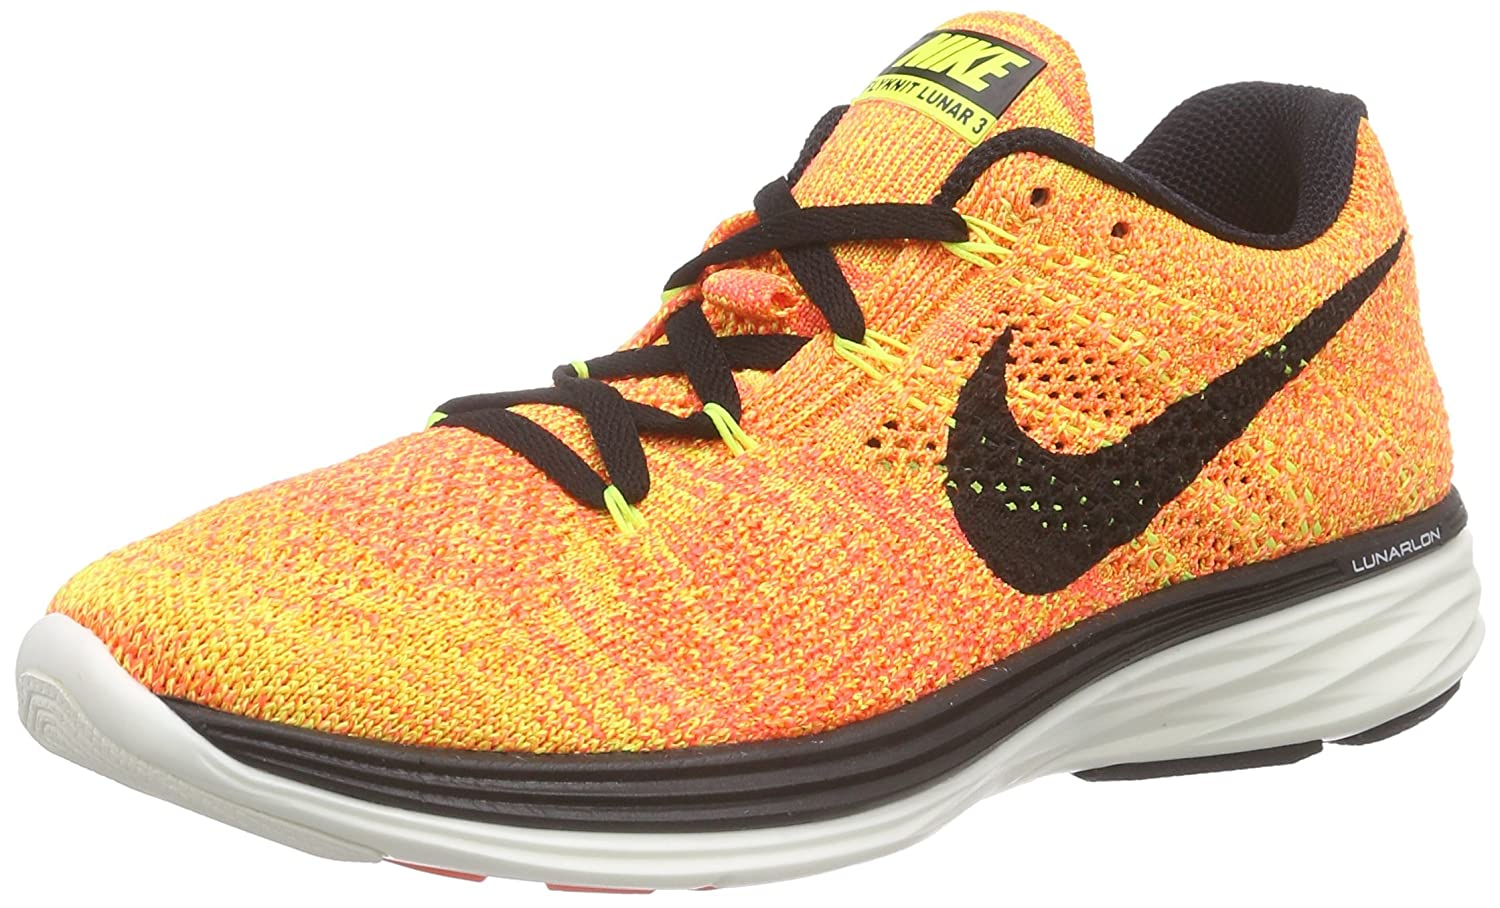 NIKE Women's B(M) Flyknit Lunar3 Running/Training Shoes B01BWLE1GY 10.5 B(M) Women's US|Volt/Black-bright Crimson-bright Mango 4e50d5